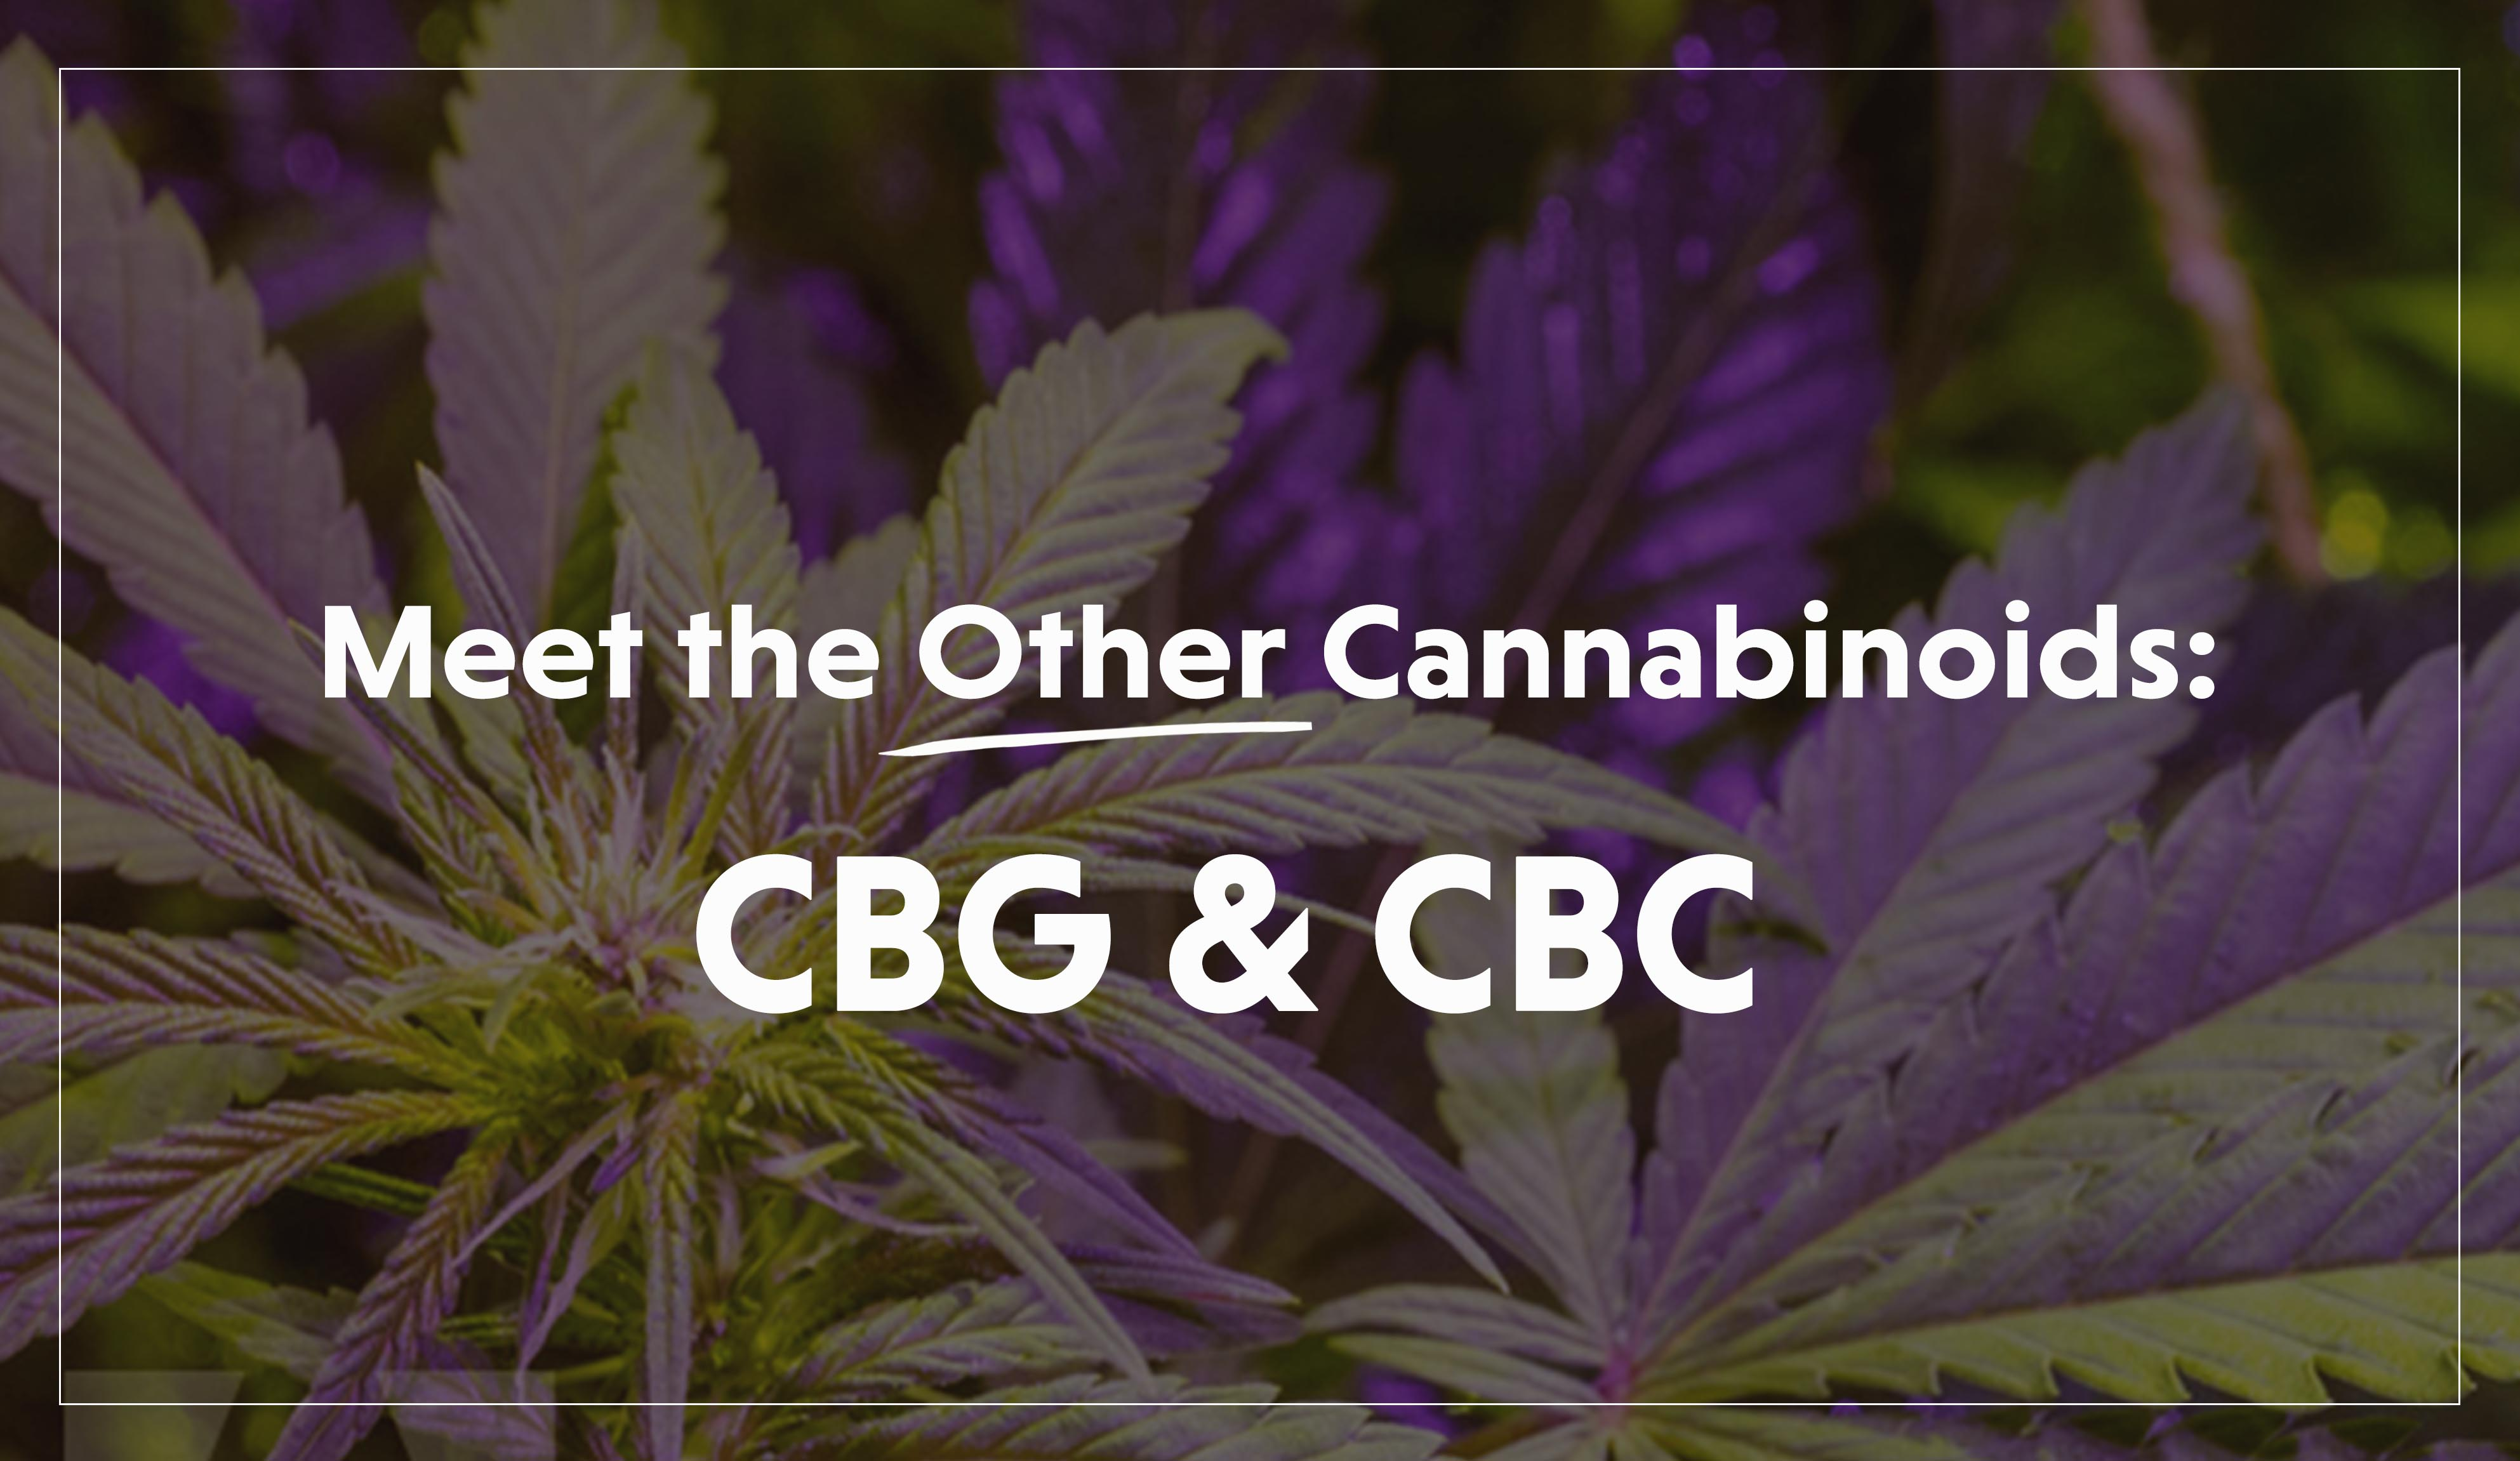 Meet the Other Cannabinoids